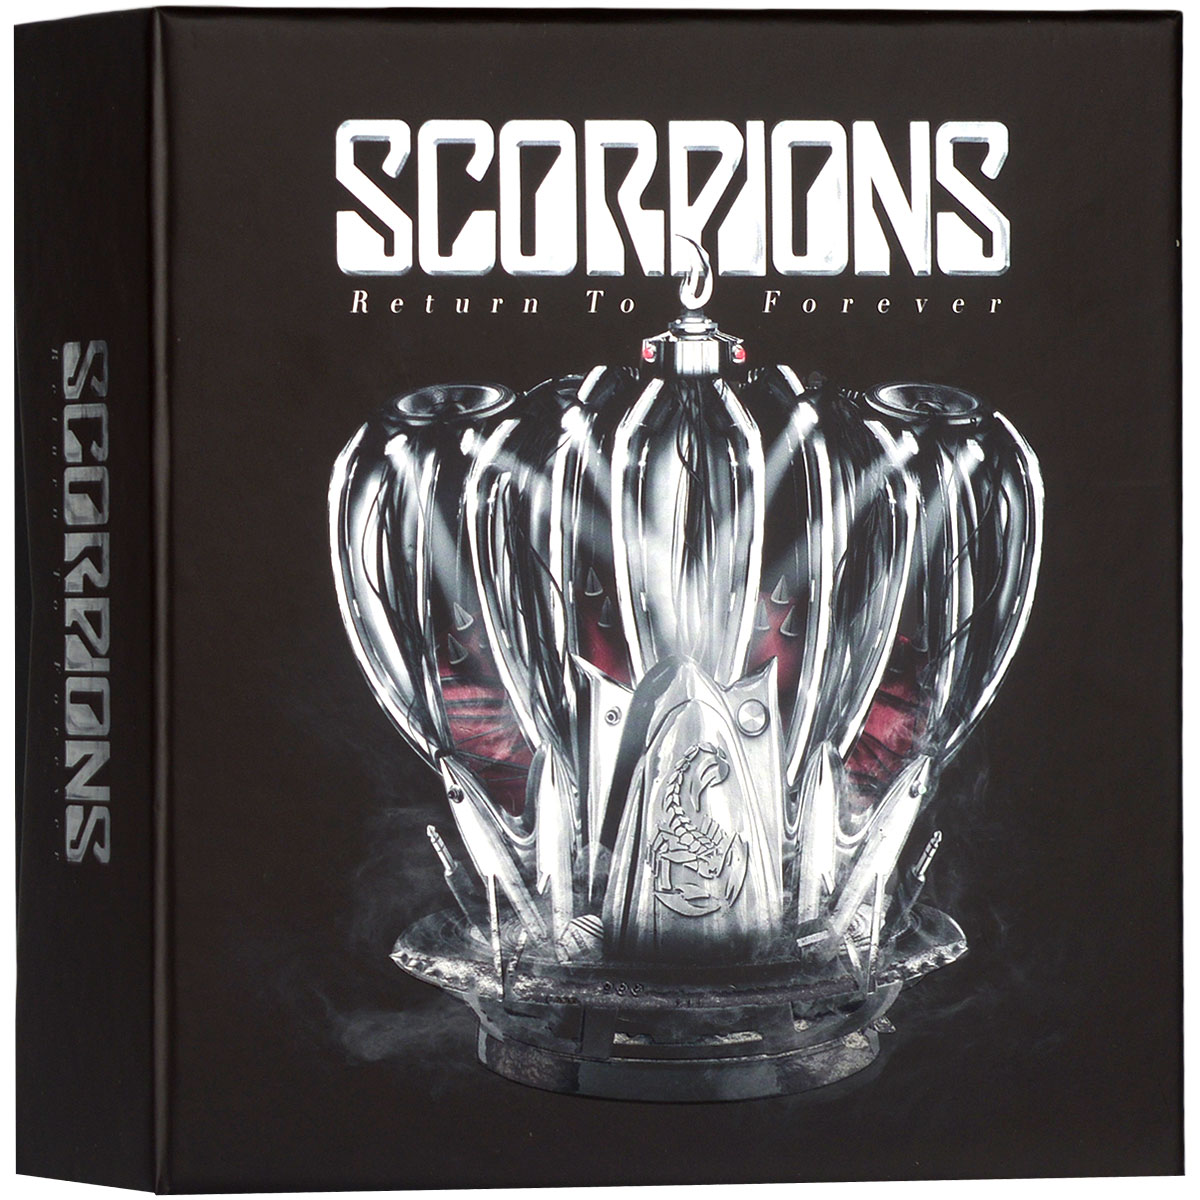 Scorpions Scorpions. Return To Forever. Limited 50th Anniversary Collector'S Box (3 CD + LP) виниловая пластинка scorpions born to touch your feelings best of rock ballads